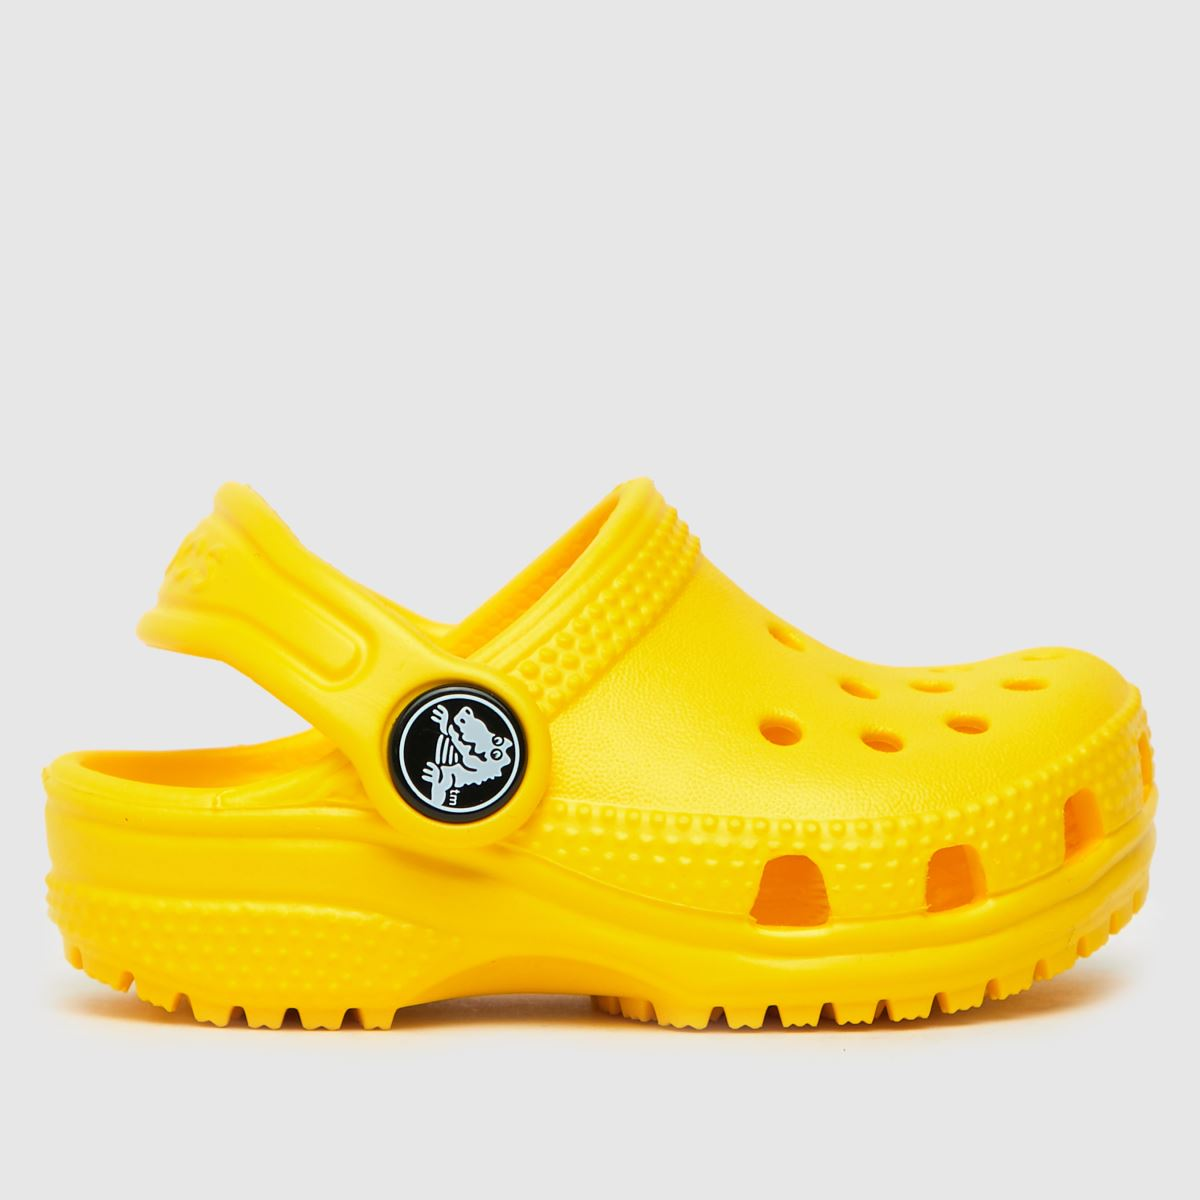 Crocs Yellow Classic Clog Trainers Toddler